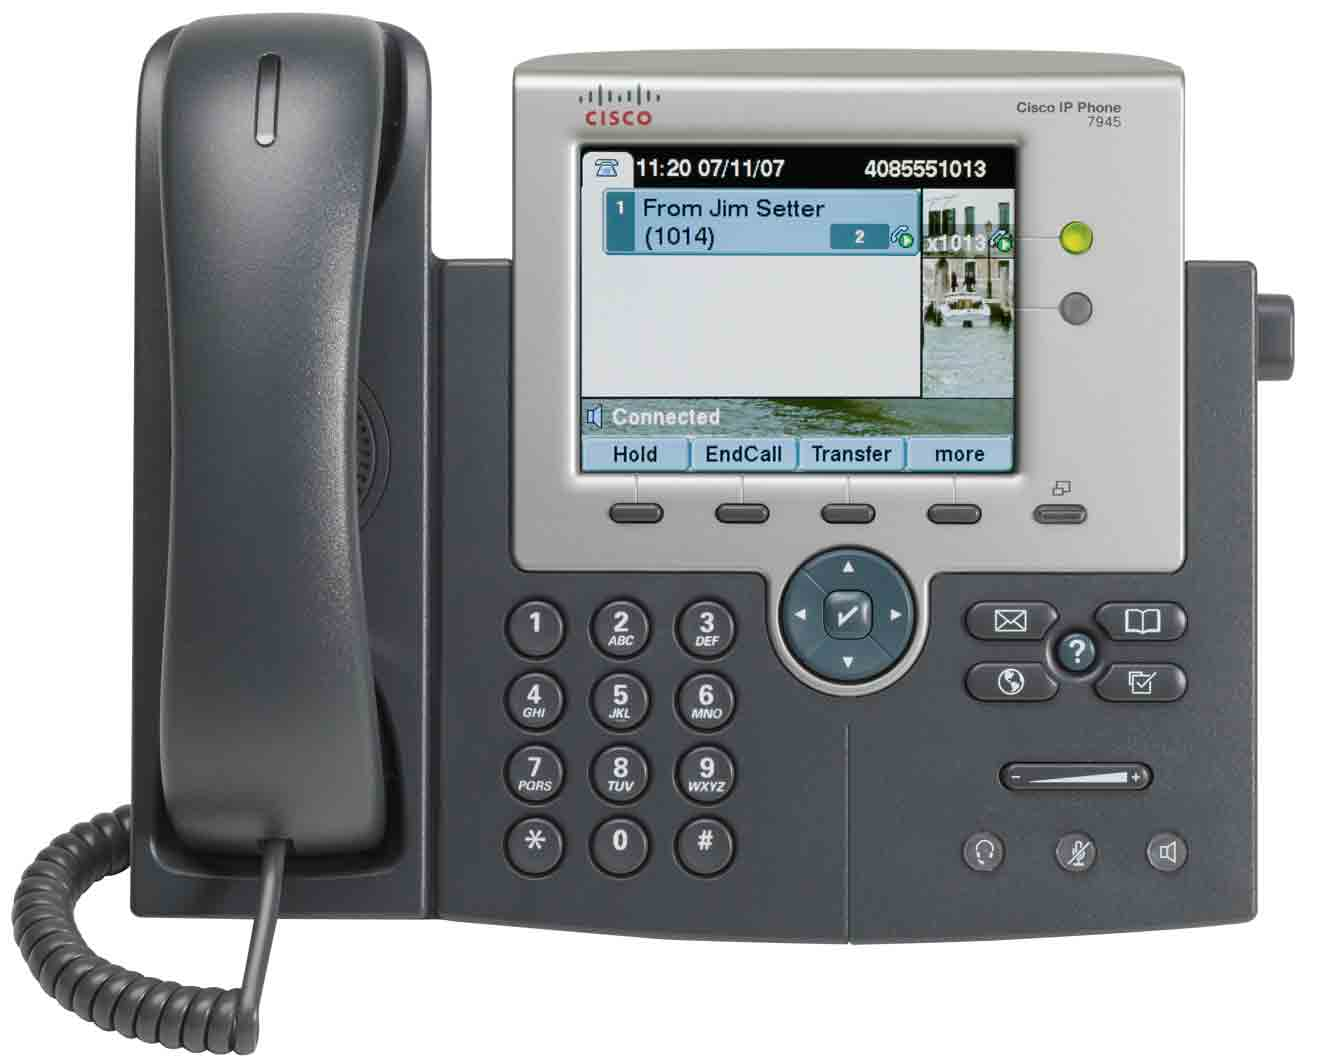 6 8 15 14 13 12 11 10 186421 Cisco Unified IP-Telefon für Cisco